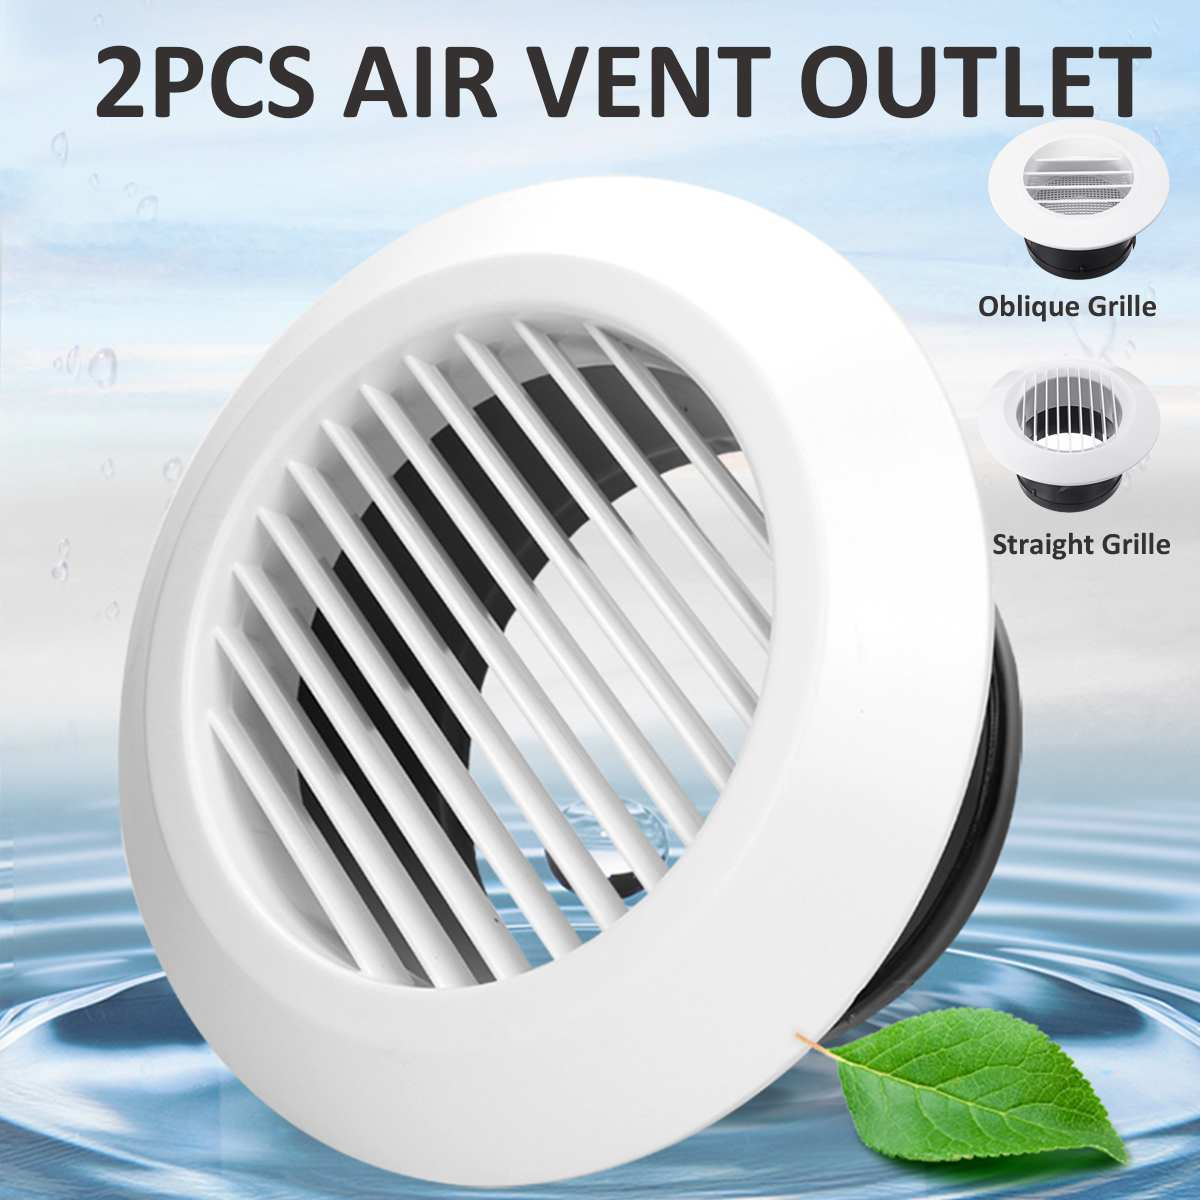 2pcs 4 inch Louver Air Vent Grille Home Exhaust Fan 95mm Outlet Ceiling Wall Mount Round ABS Cover Bathroom Air Cooling Vents